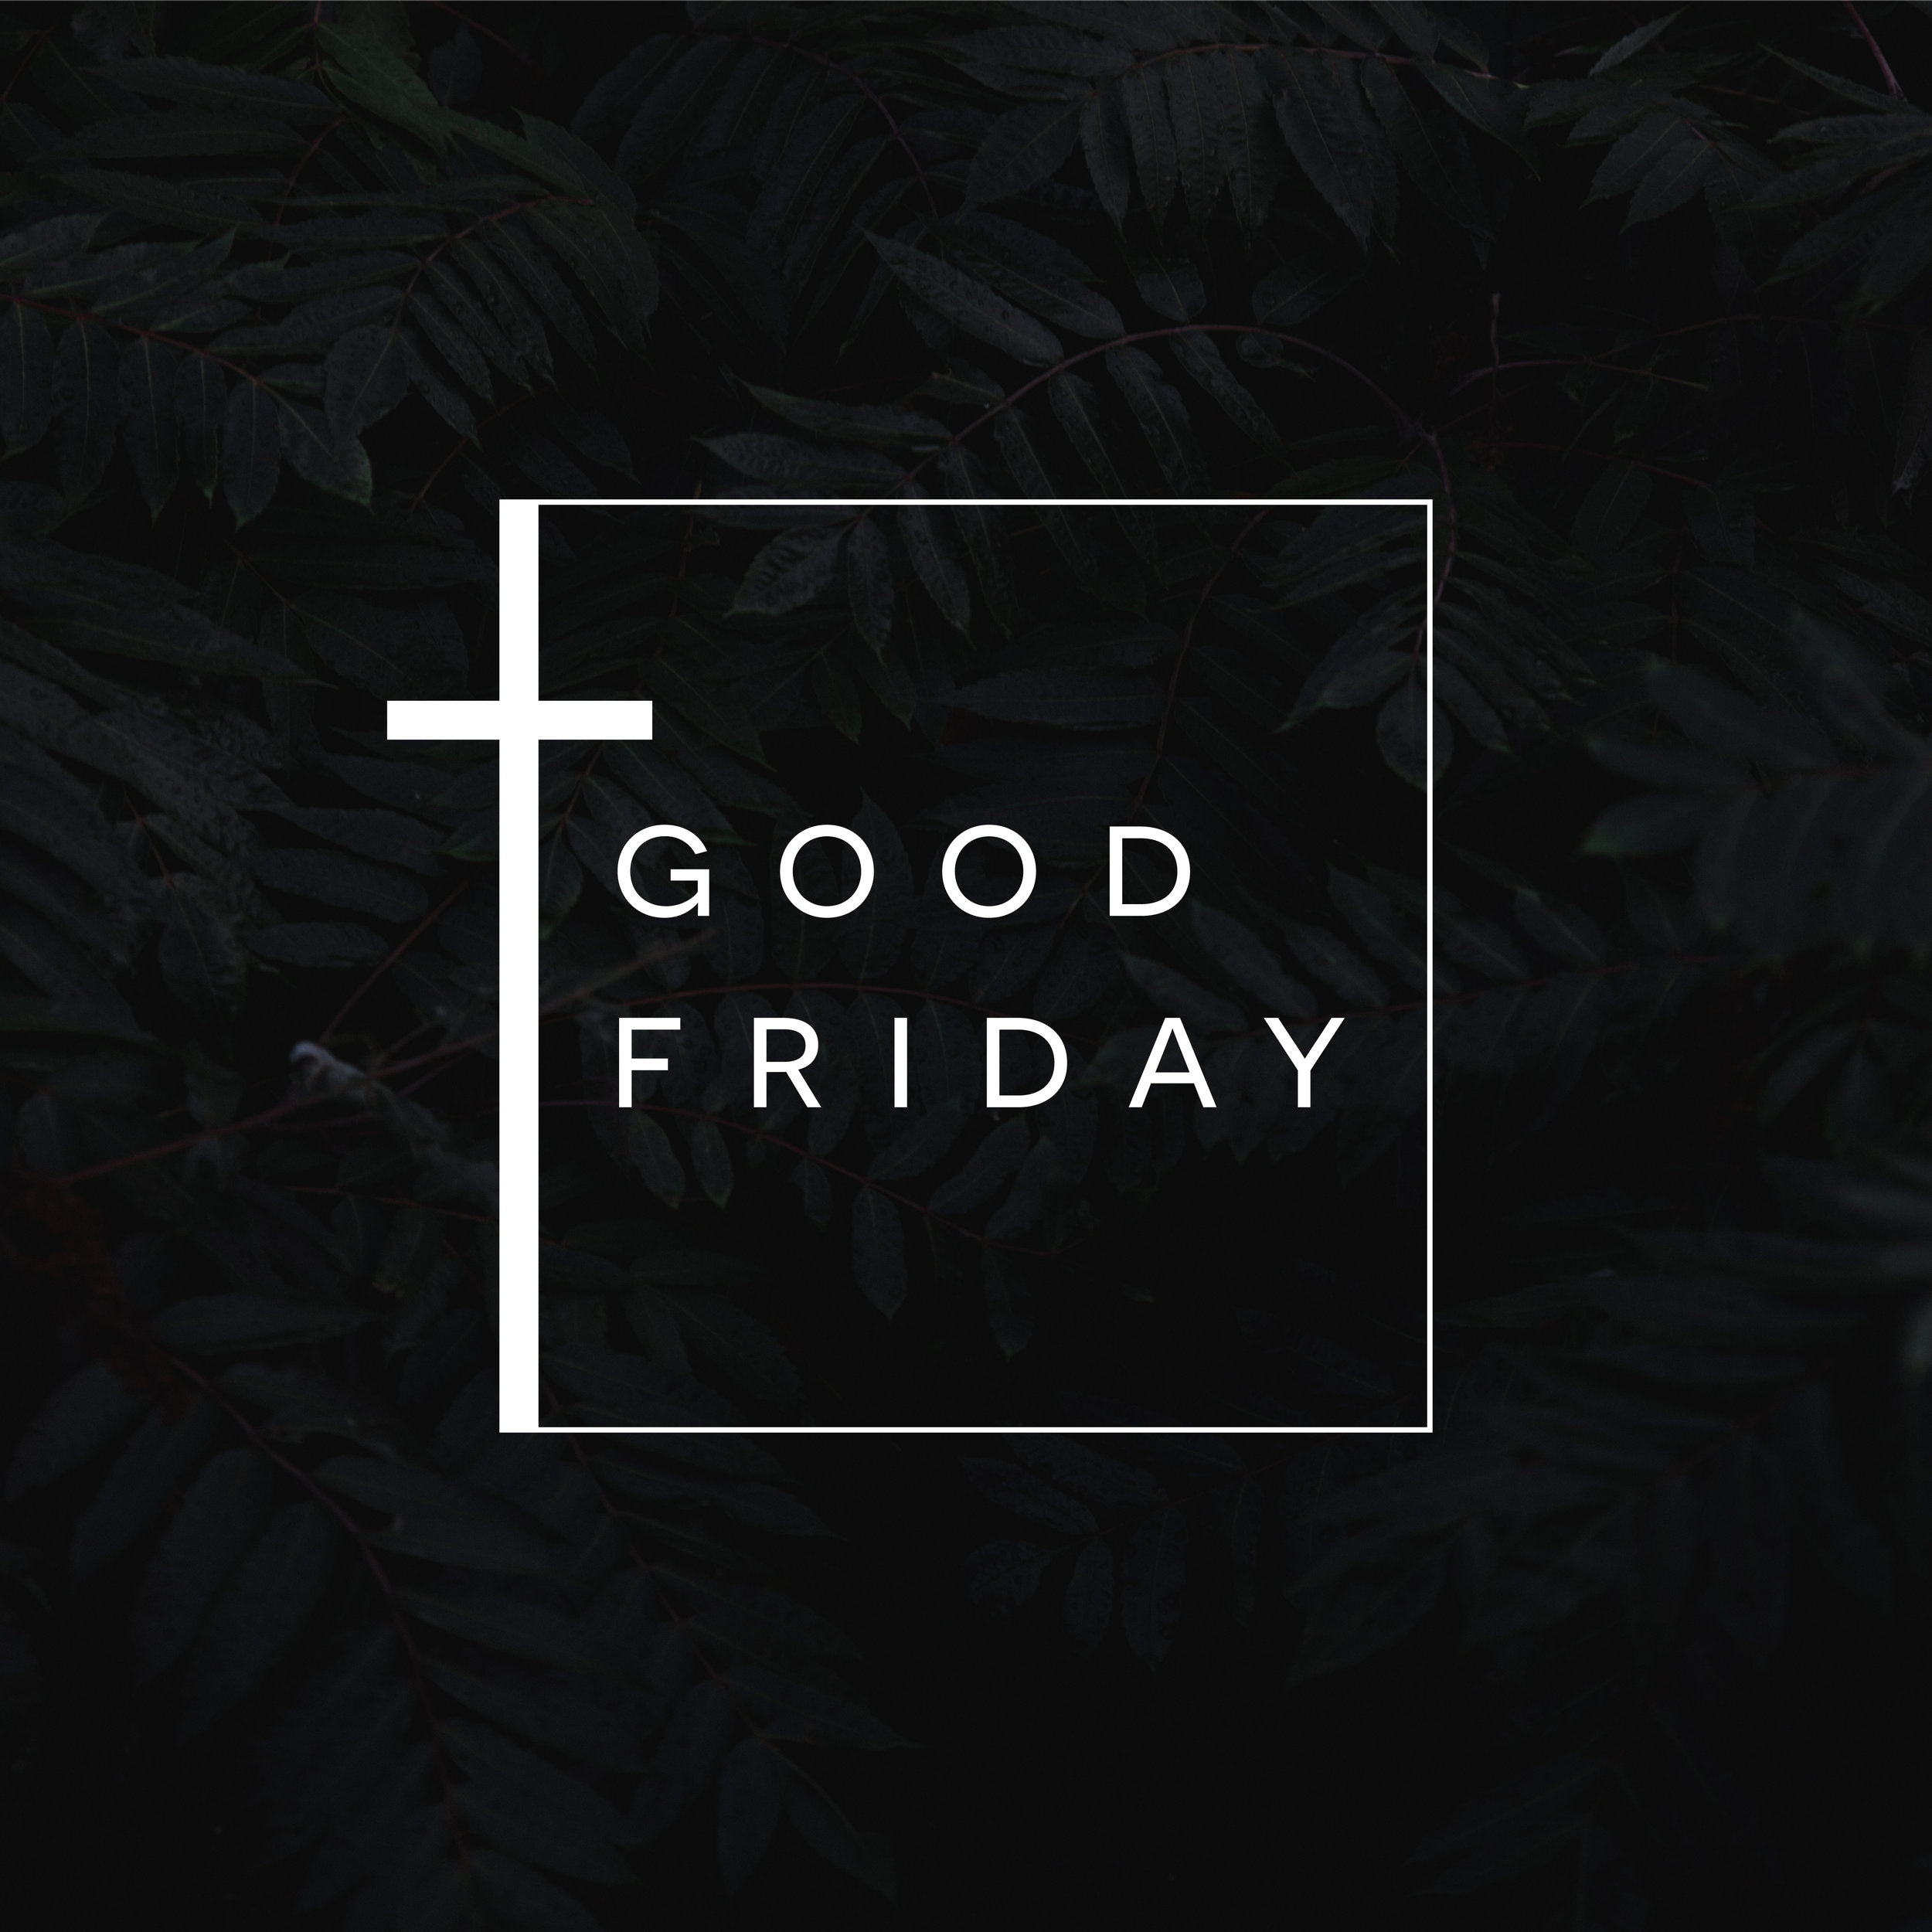 Good Friday 2019